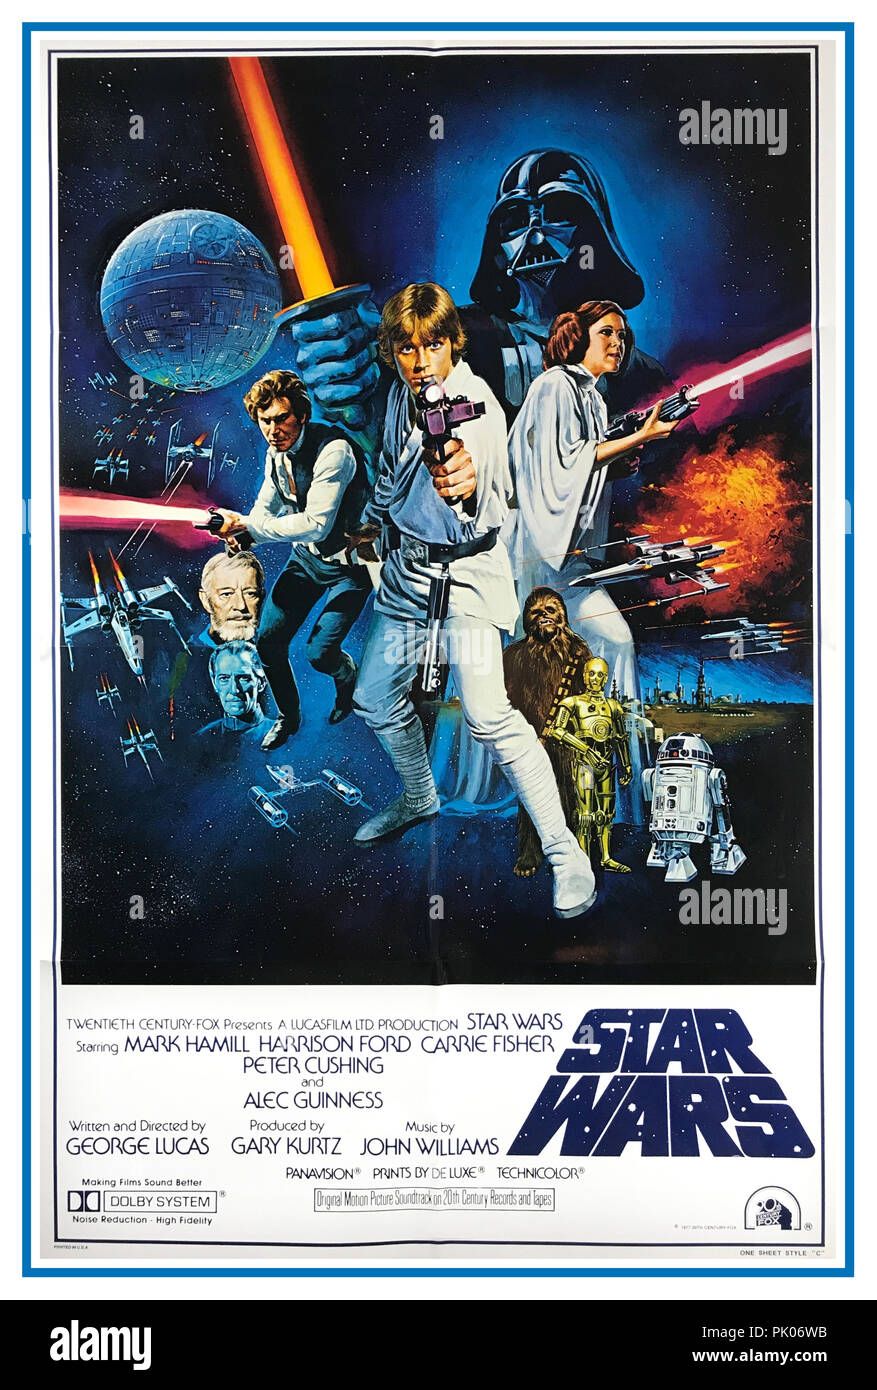 "STAR WARS, 1977. Original international style movie film poster starring Mark Hamill, Harrison Ford, Carrie Fisher, Alec Guinness, Peter Cushing and directed by George Lucas. ""A long time ago in a galaxy far, far away…"" - Stock Image"